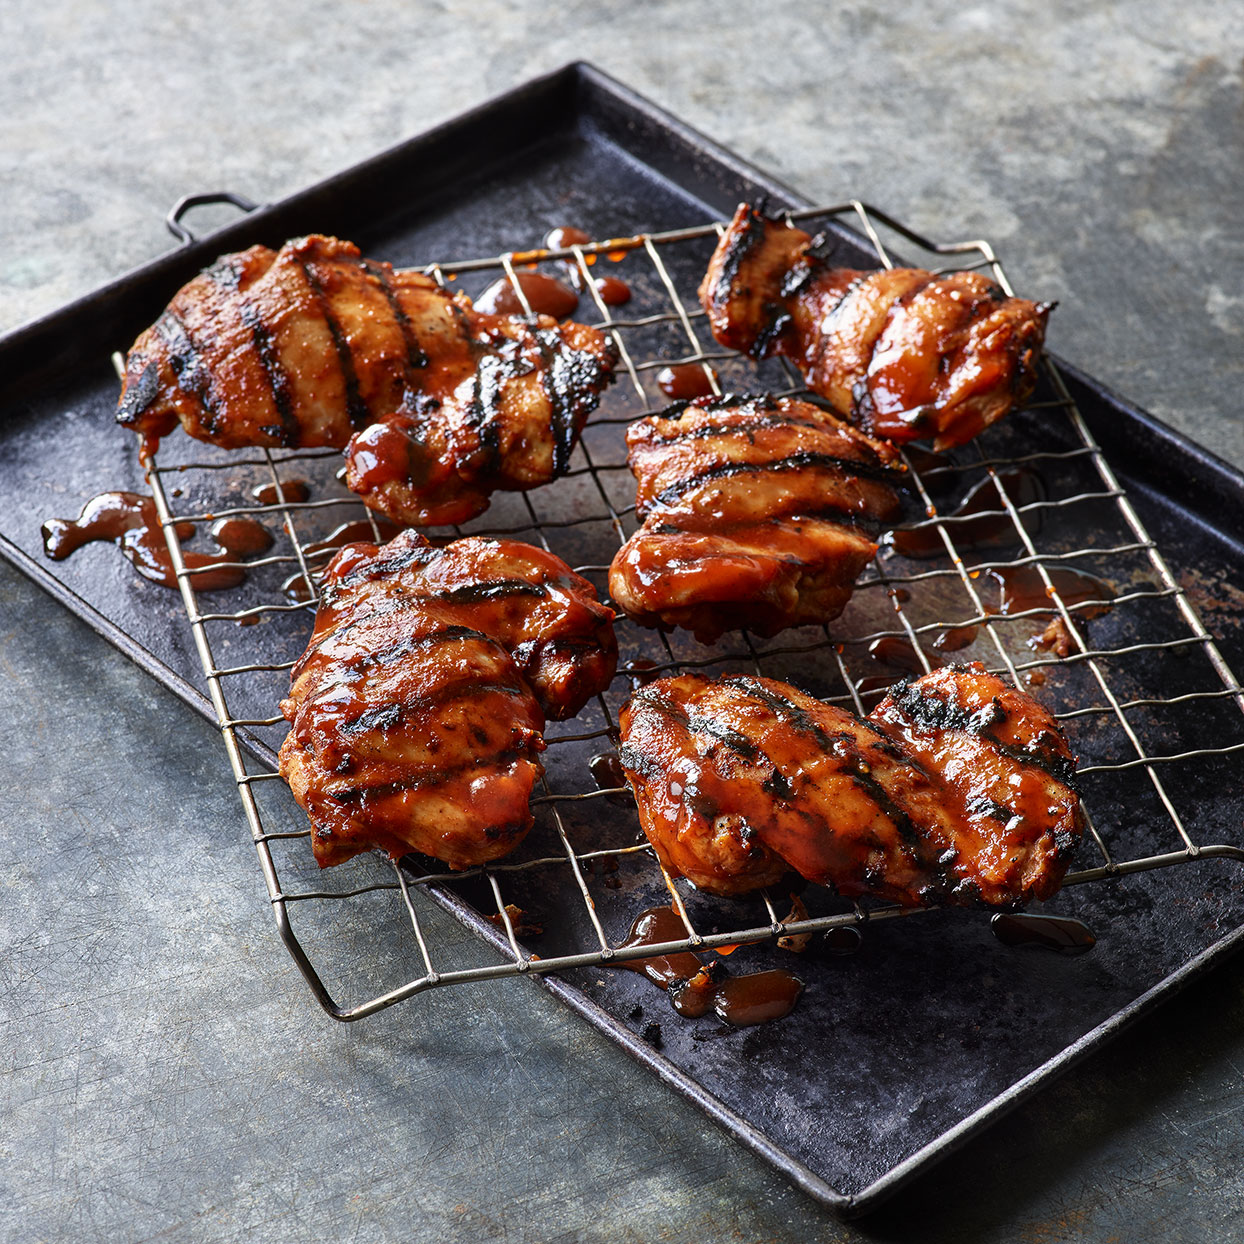 This marinade is best on quick-cooking cuts of meat like this spicy grilled chicken, as the sugars in it can burn if on the grill for too long. Use the grill to cook the rest of your meal, too--Japanese eggplant and shishito peppers would be nice. Source: EatingWell Magazine, May 2020